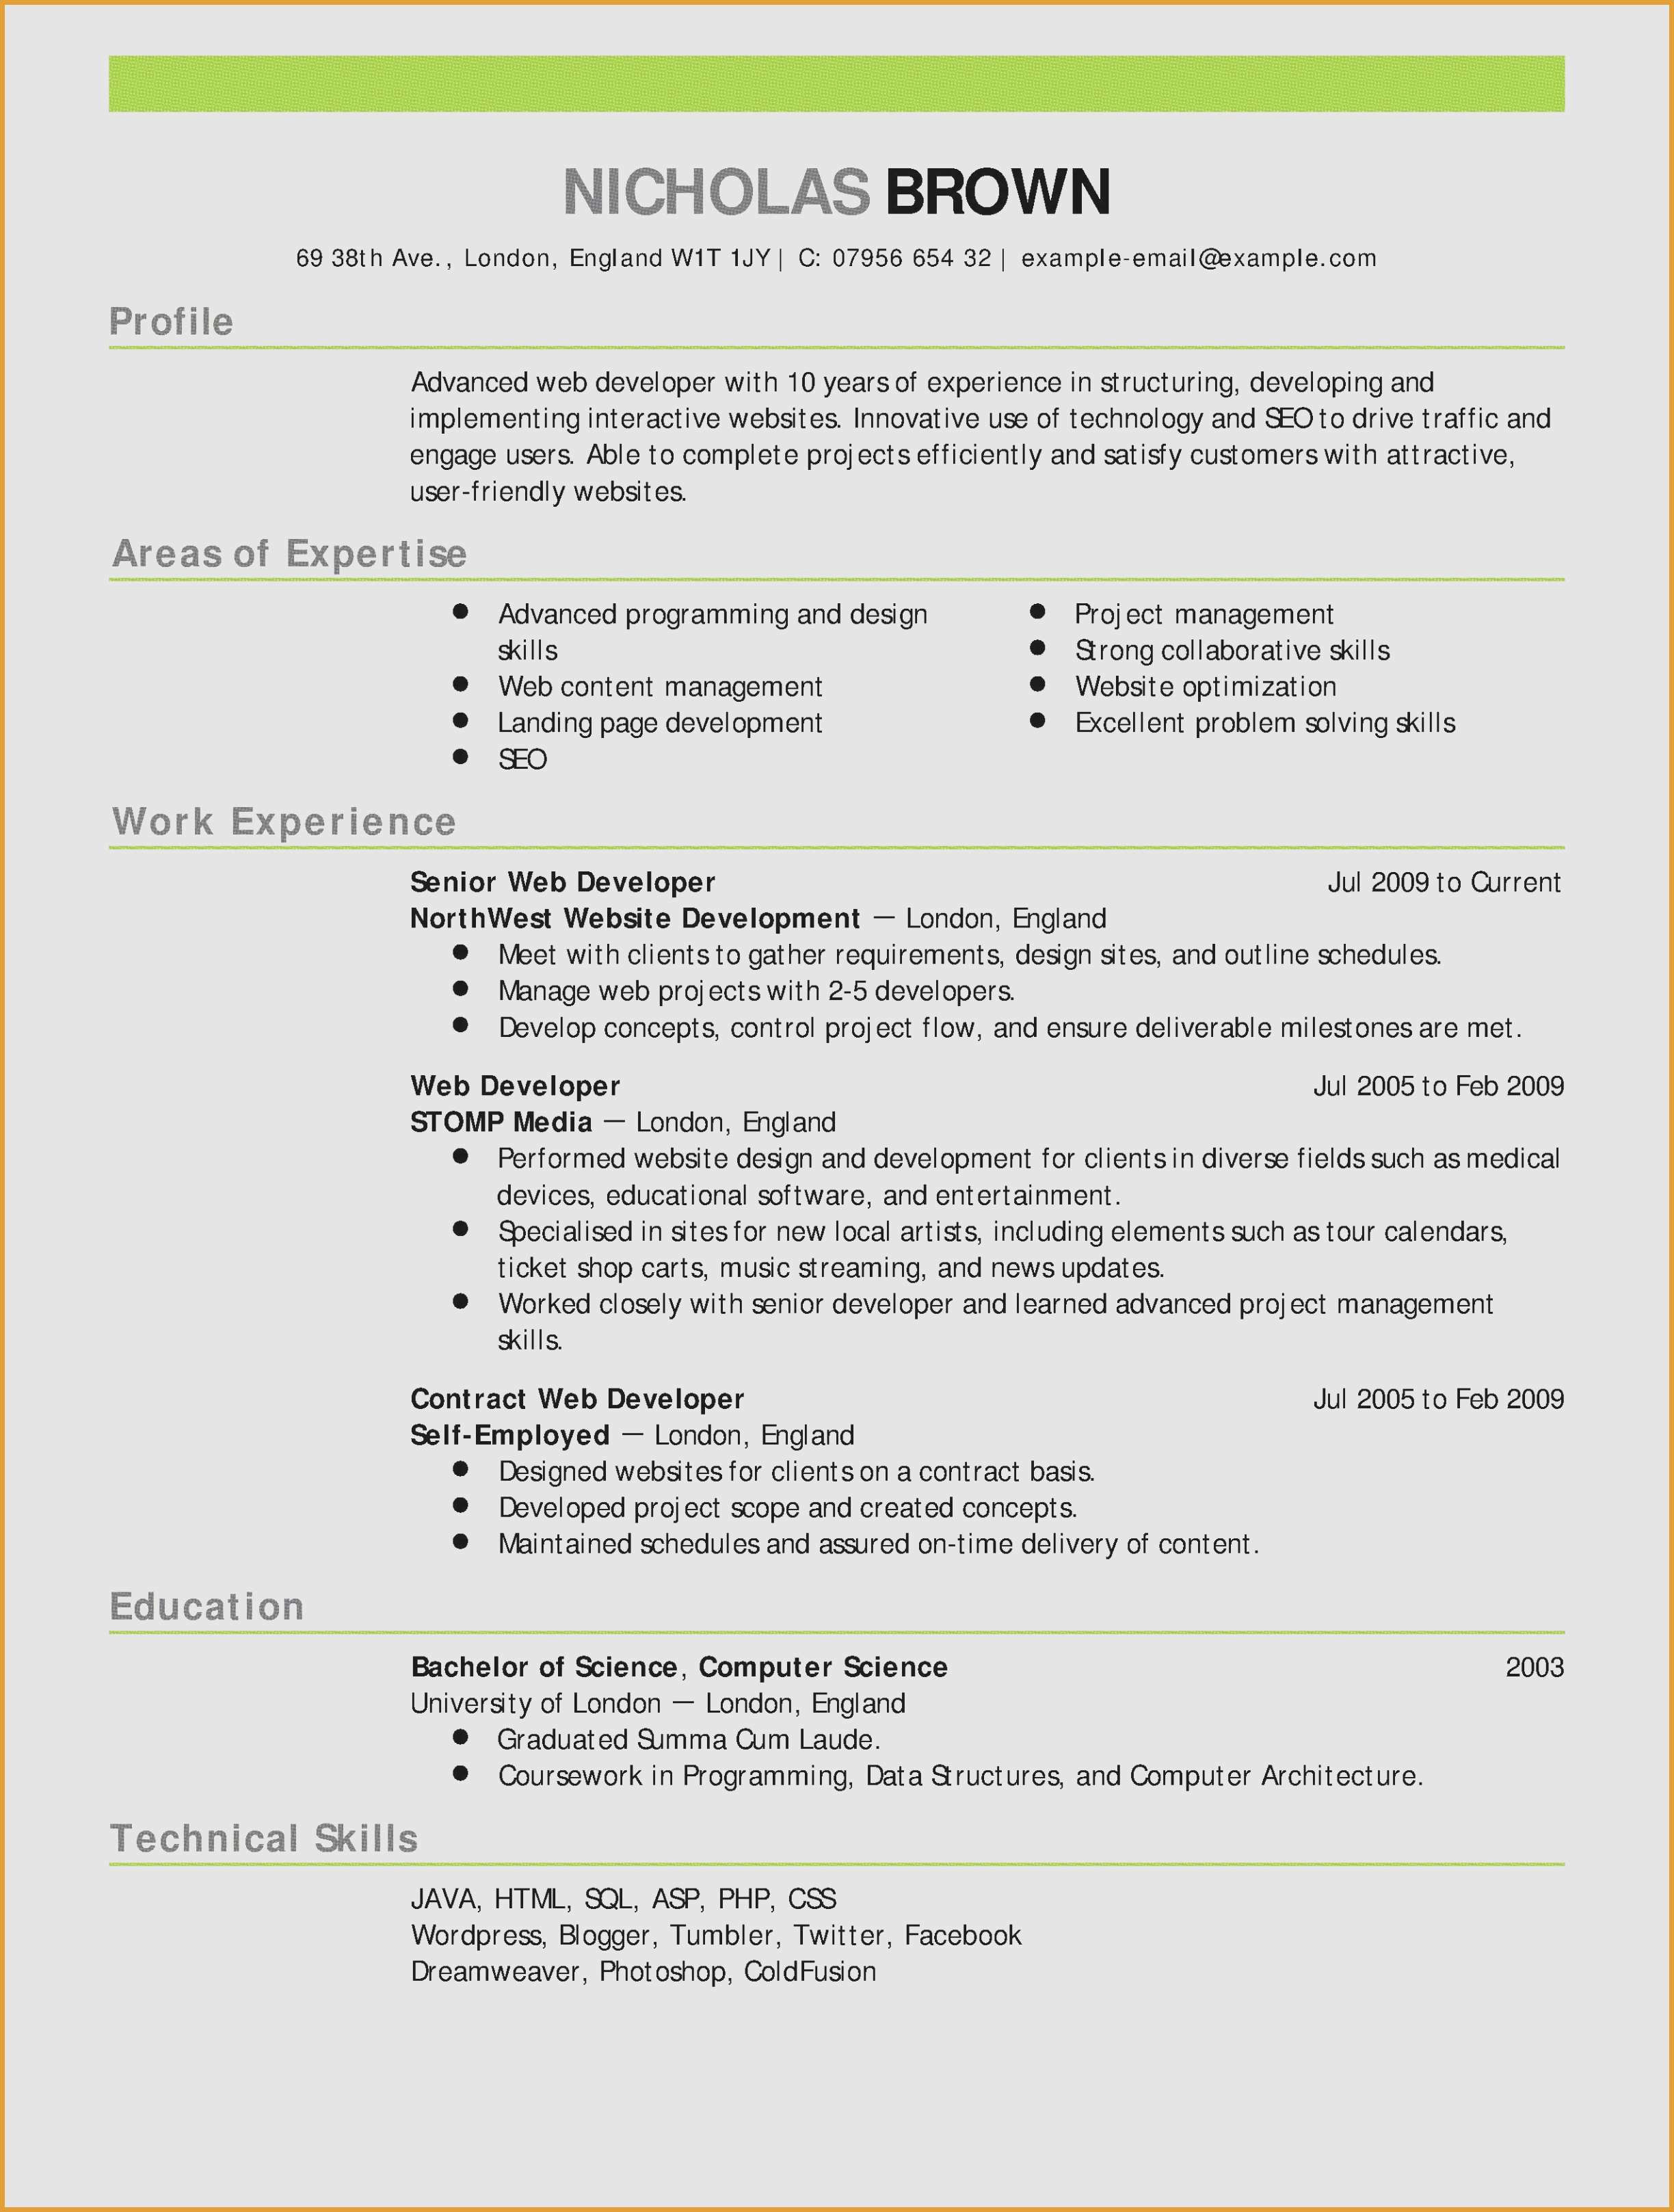 teacher resume template free download Collection-Teacher Resume Template Free Inspirational Examples Resumes Ecologist Resume 0d Teacher Resume Teacher Resume Template Free 15-a